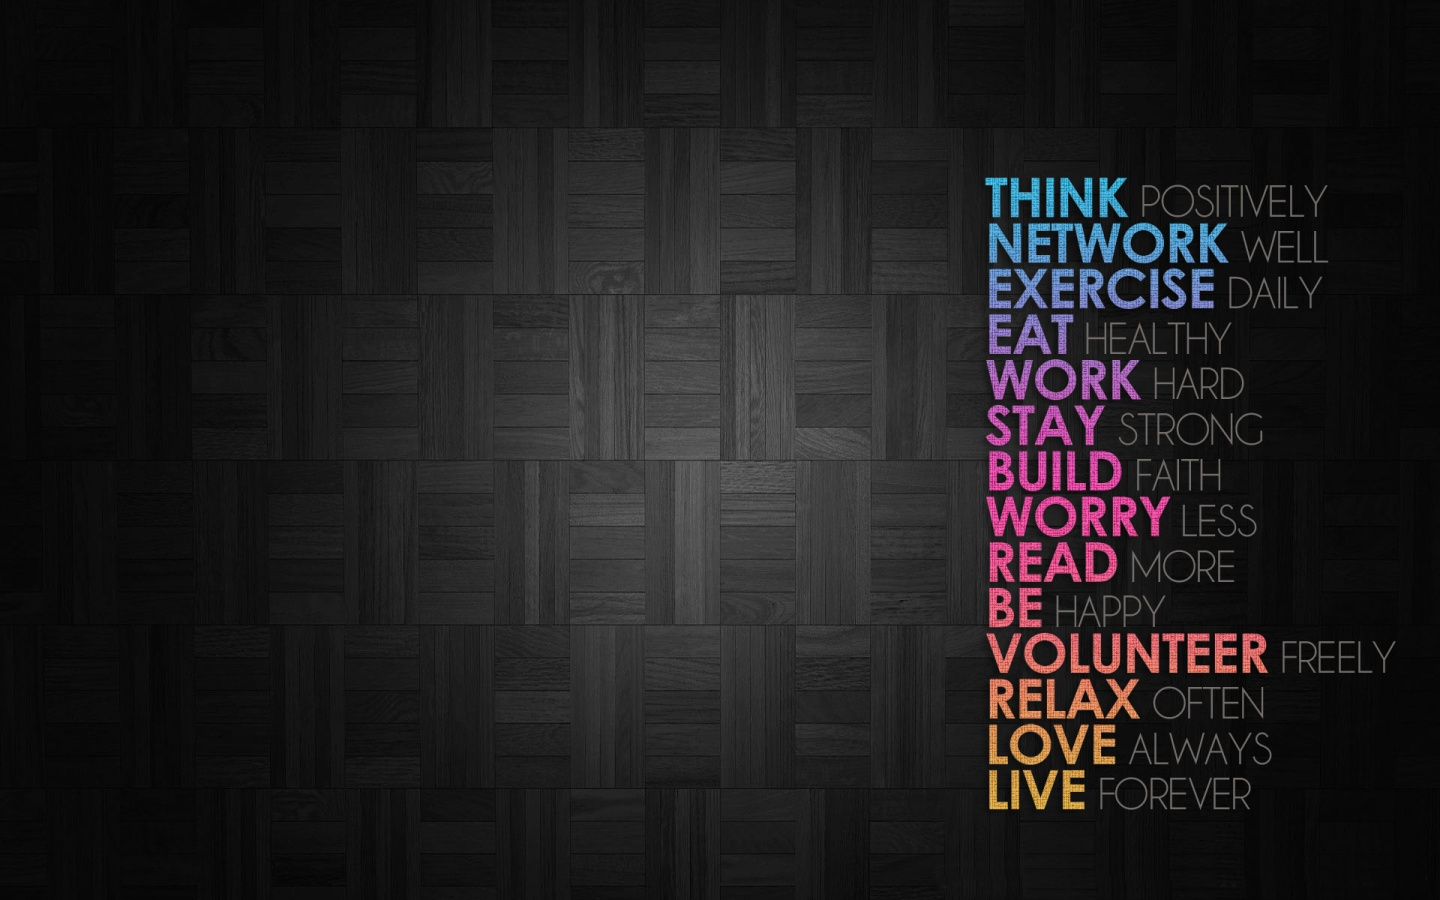 Positive Thinking Wallpapers for Desktop The Art Mad Wallpapers 1440x900